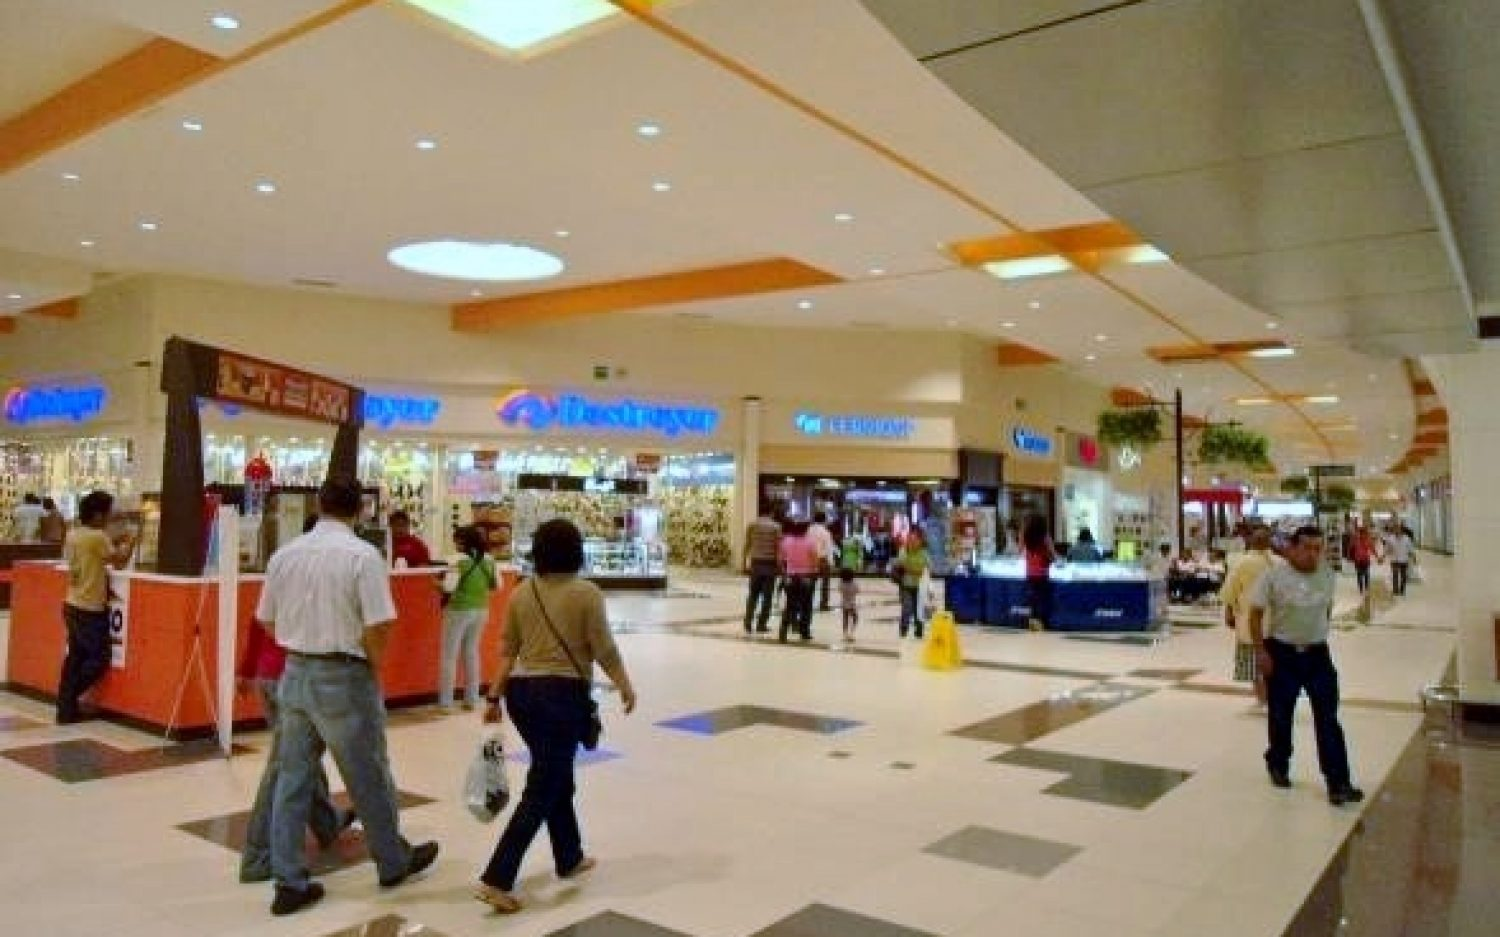 Co-Plaza Sendero Villahermosa (48)